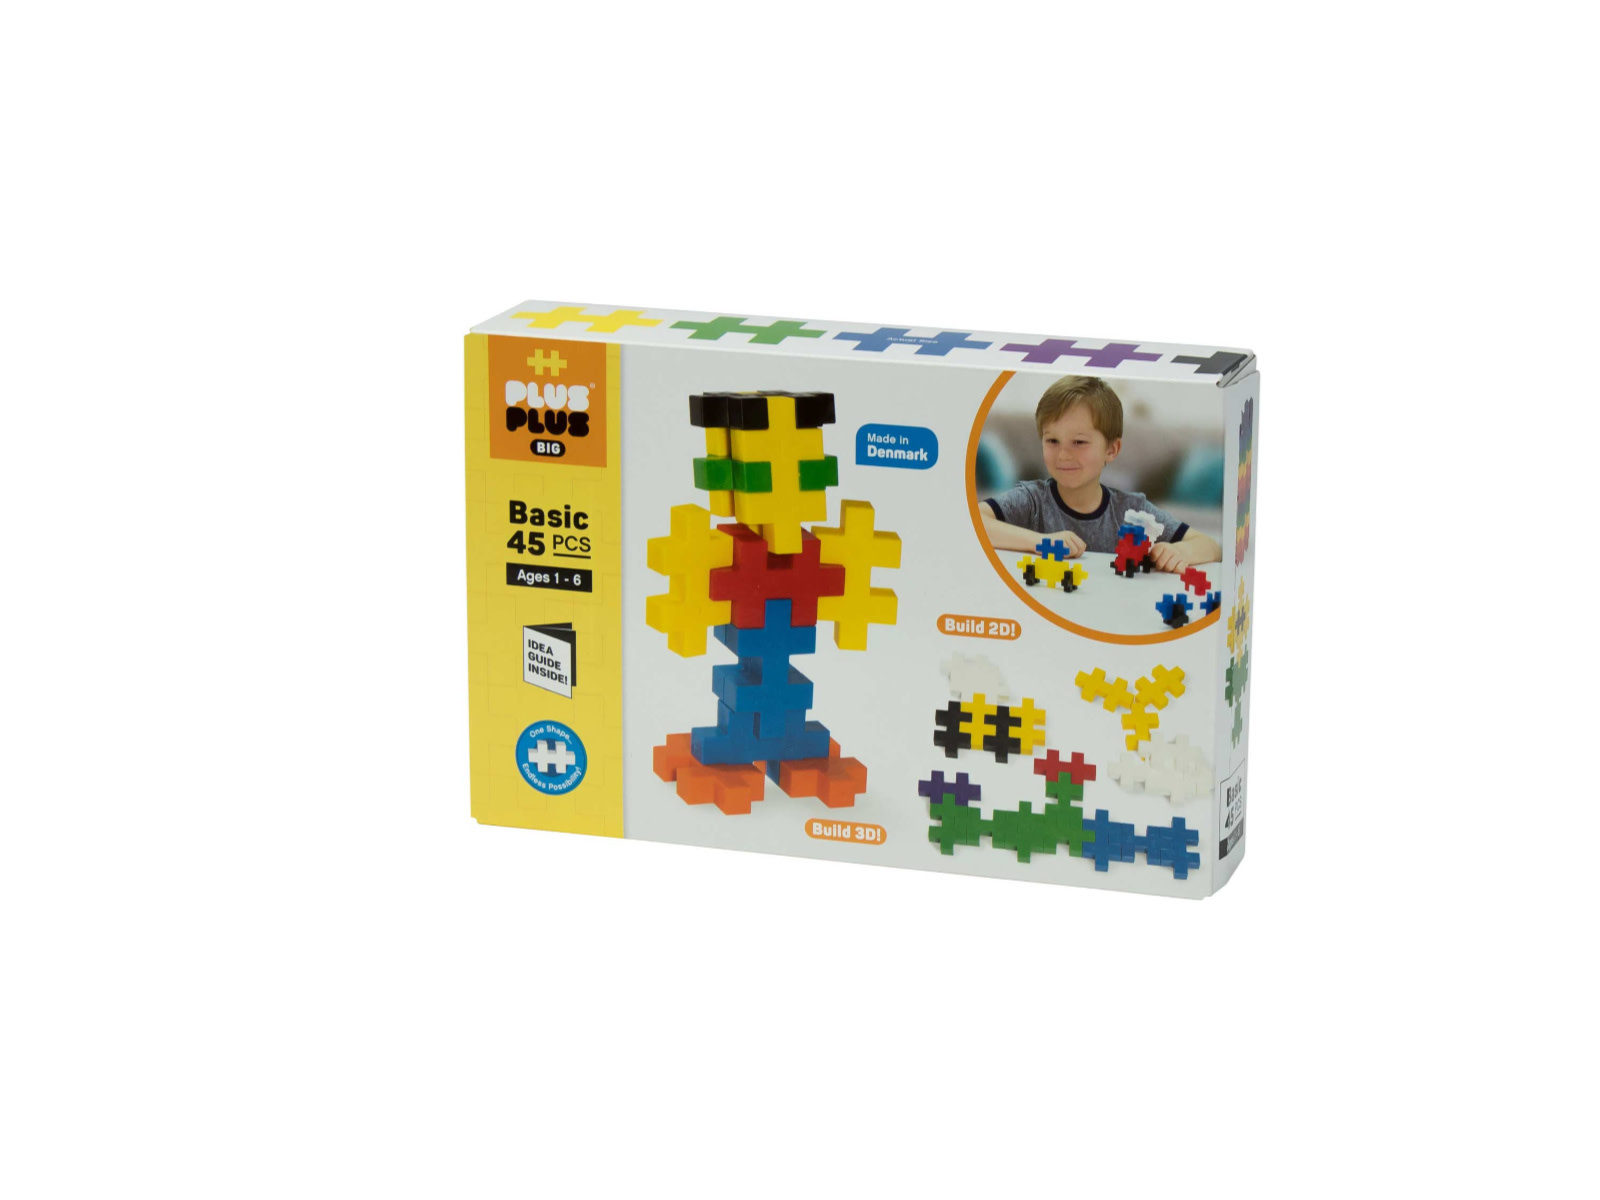 Plus Plus Plus Plus BIG 45pcs - Basic